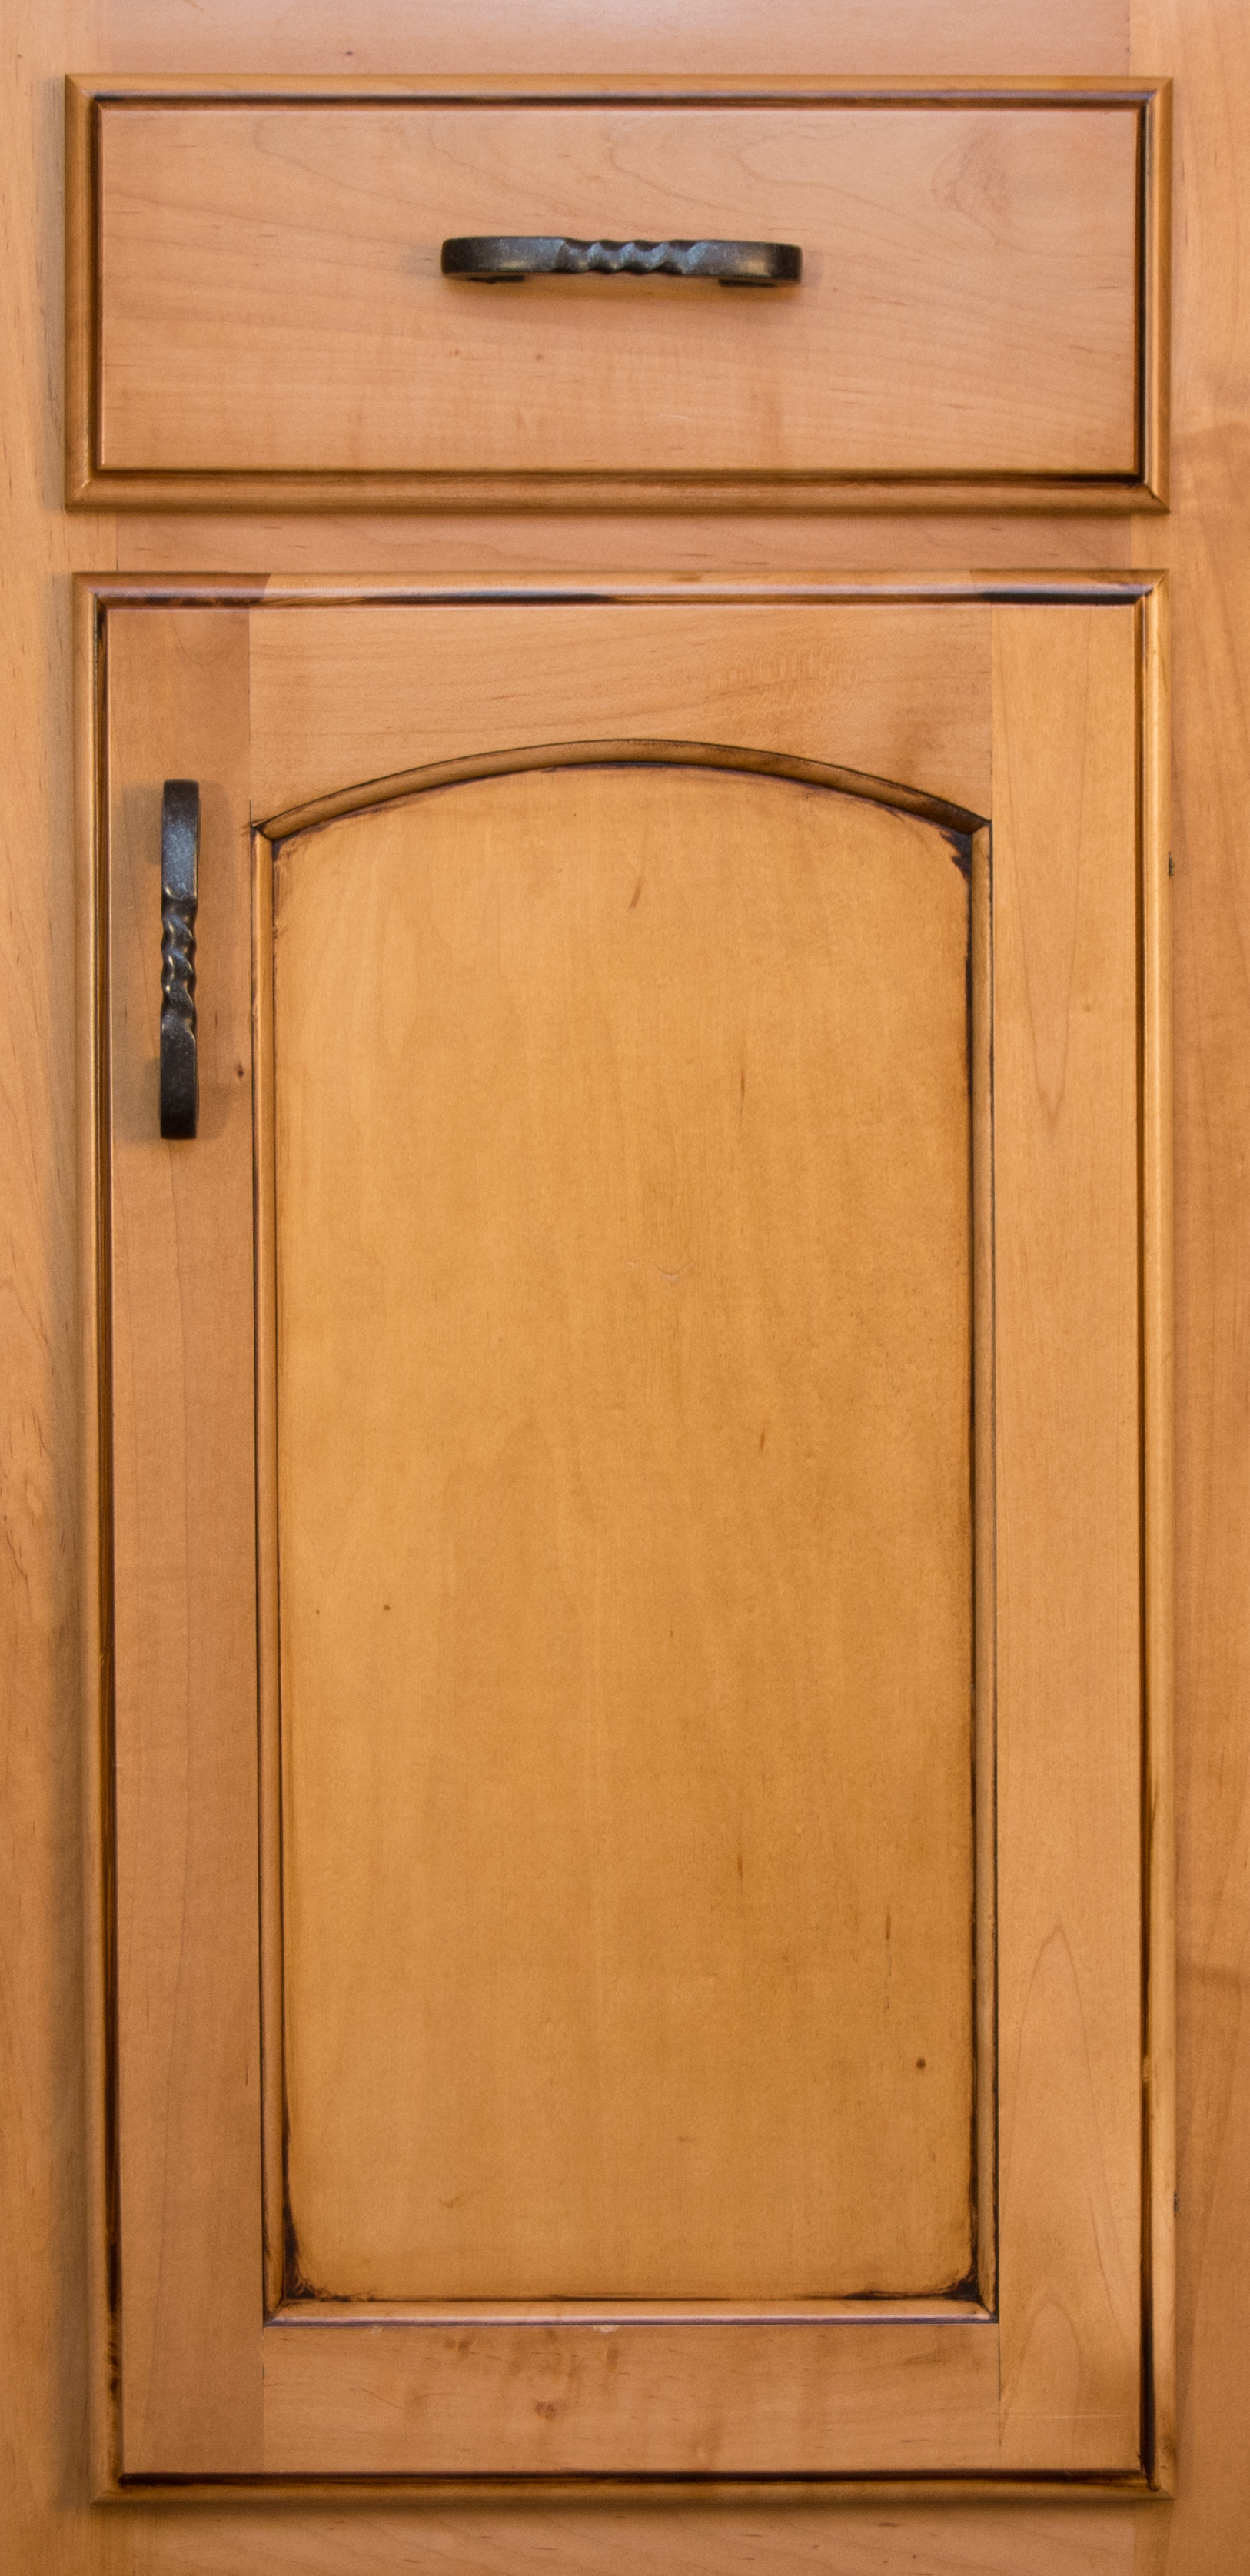 This Simple Arch Design Leans To A More Traditional Taste, While Adding  Subtle Detail And Softness To The Cabinet Door.